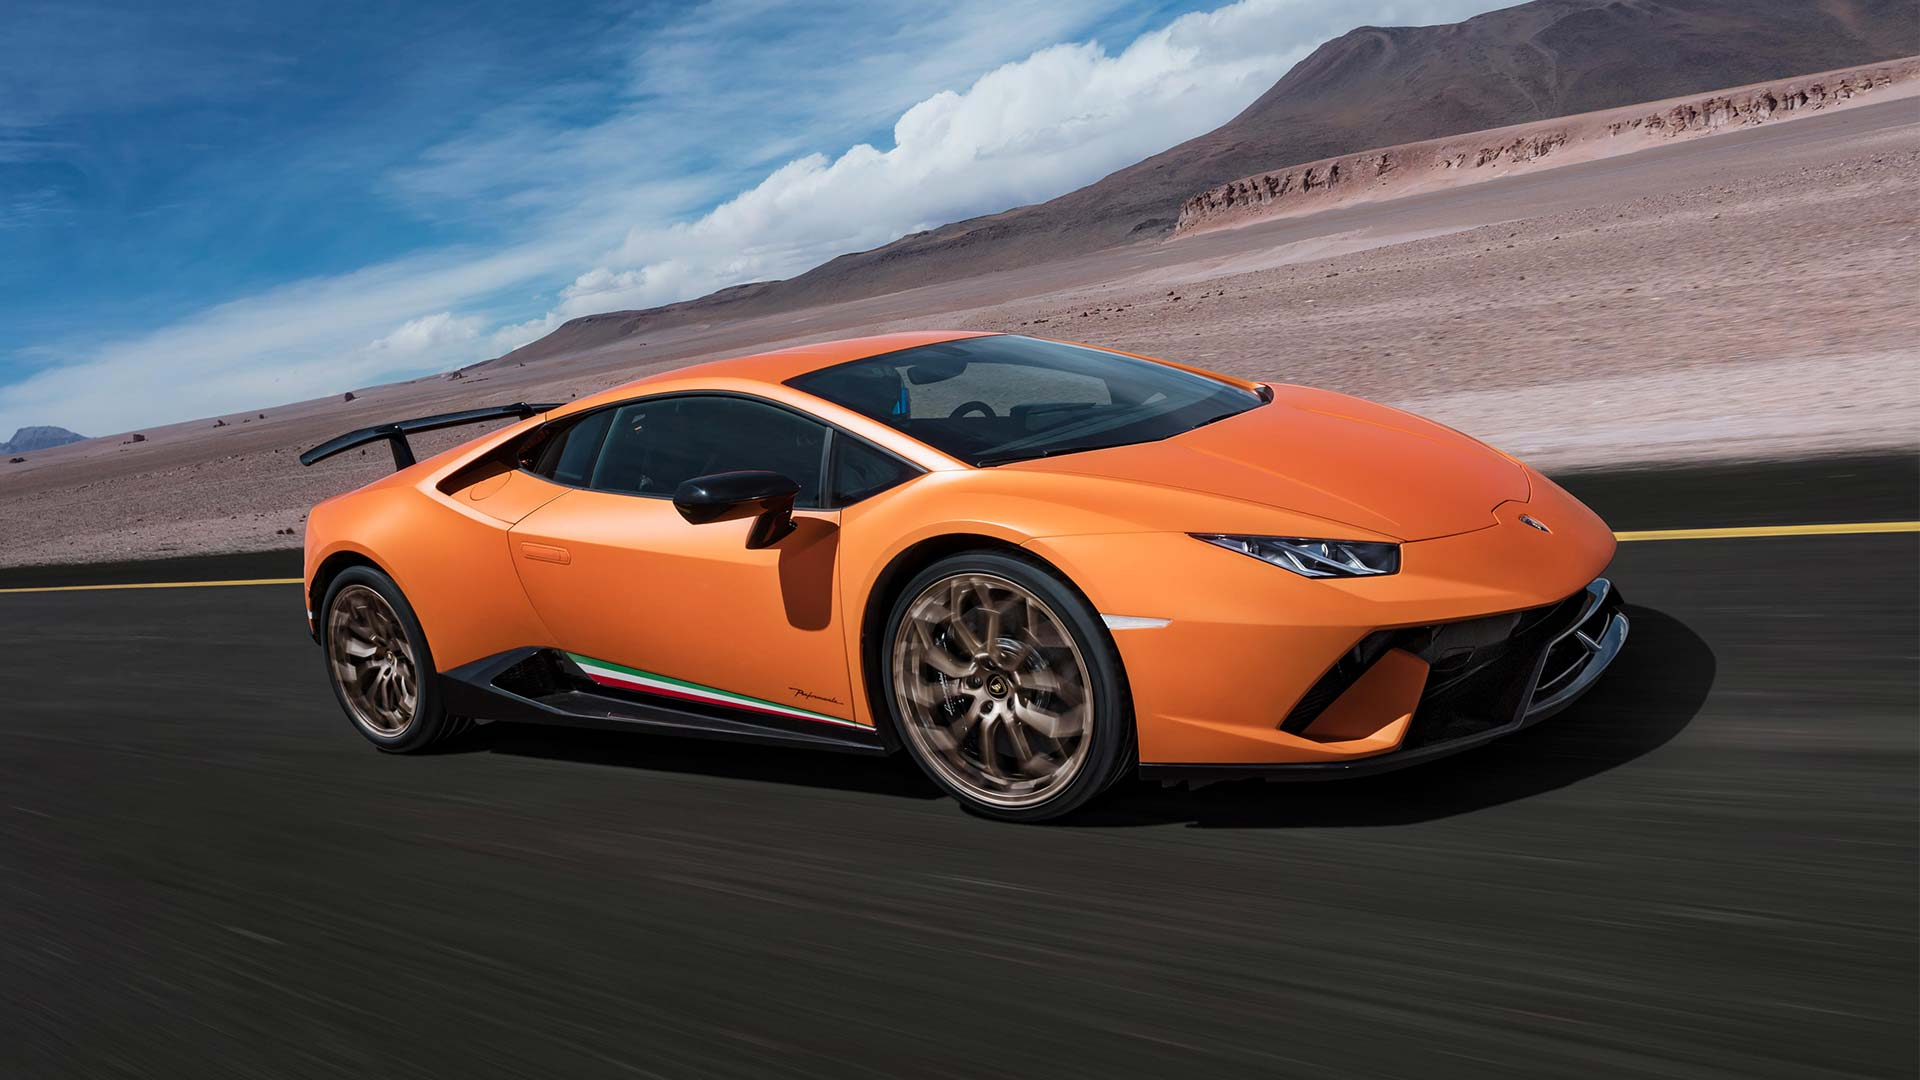 Lamborghini Broward Dealer Davie Fort Lauderdale Florida FL - Lamborghini car dealership